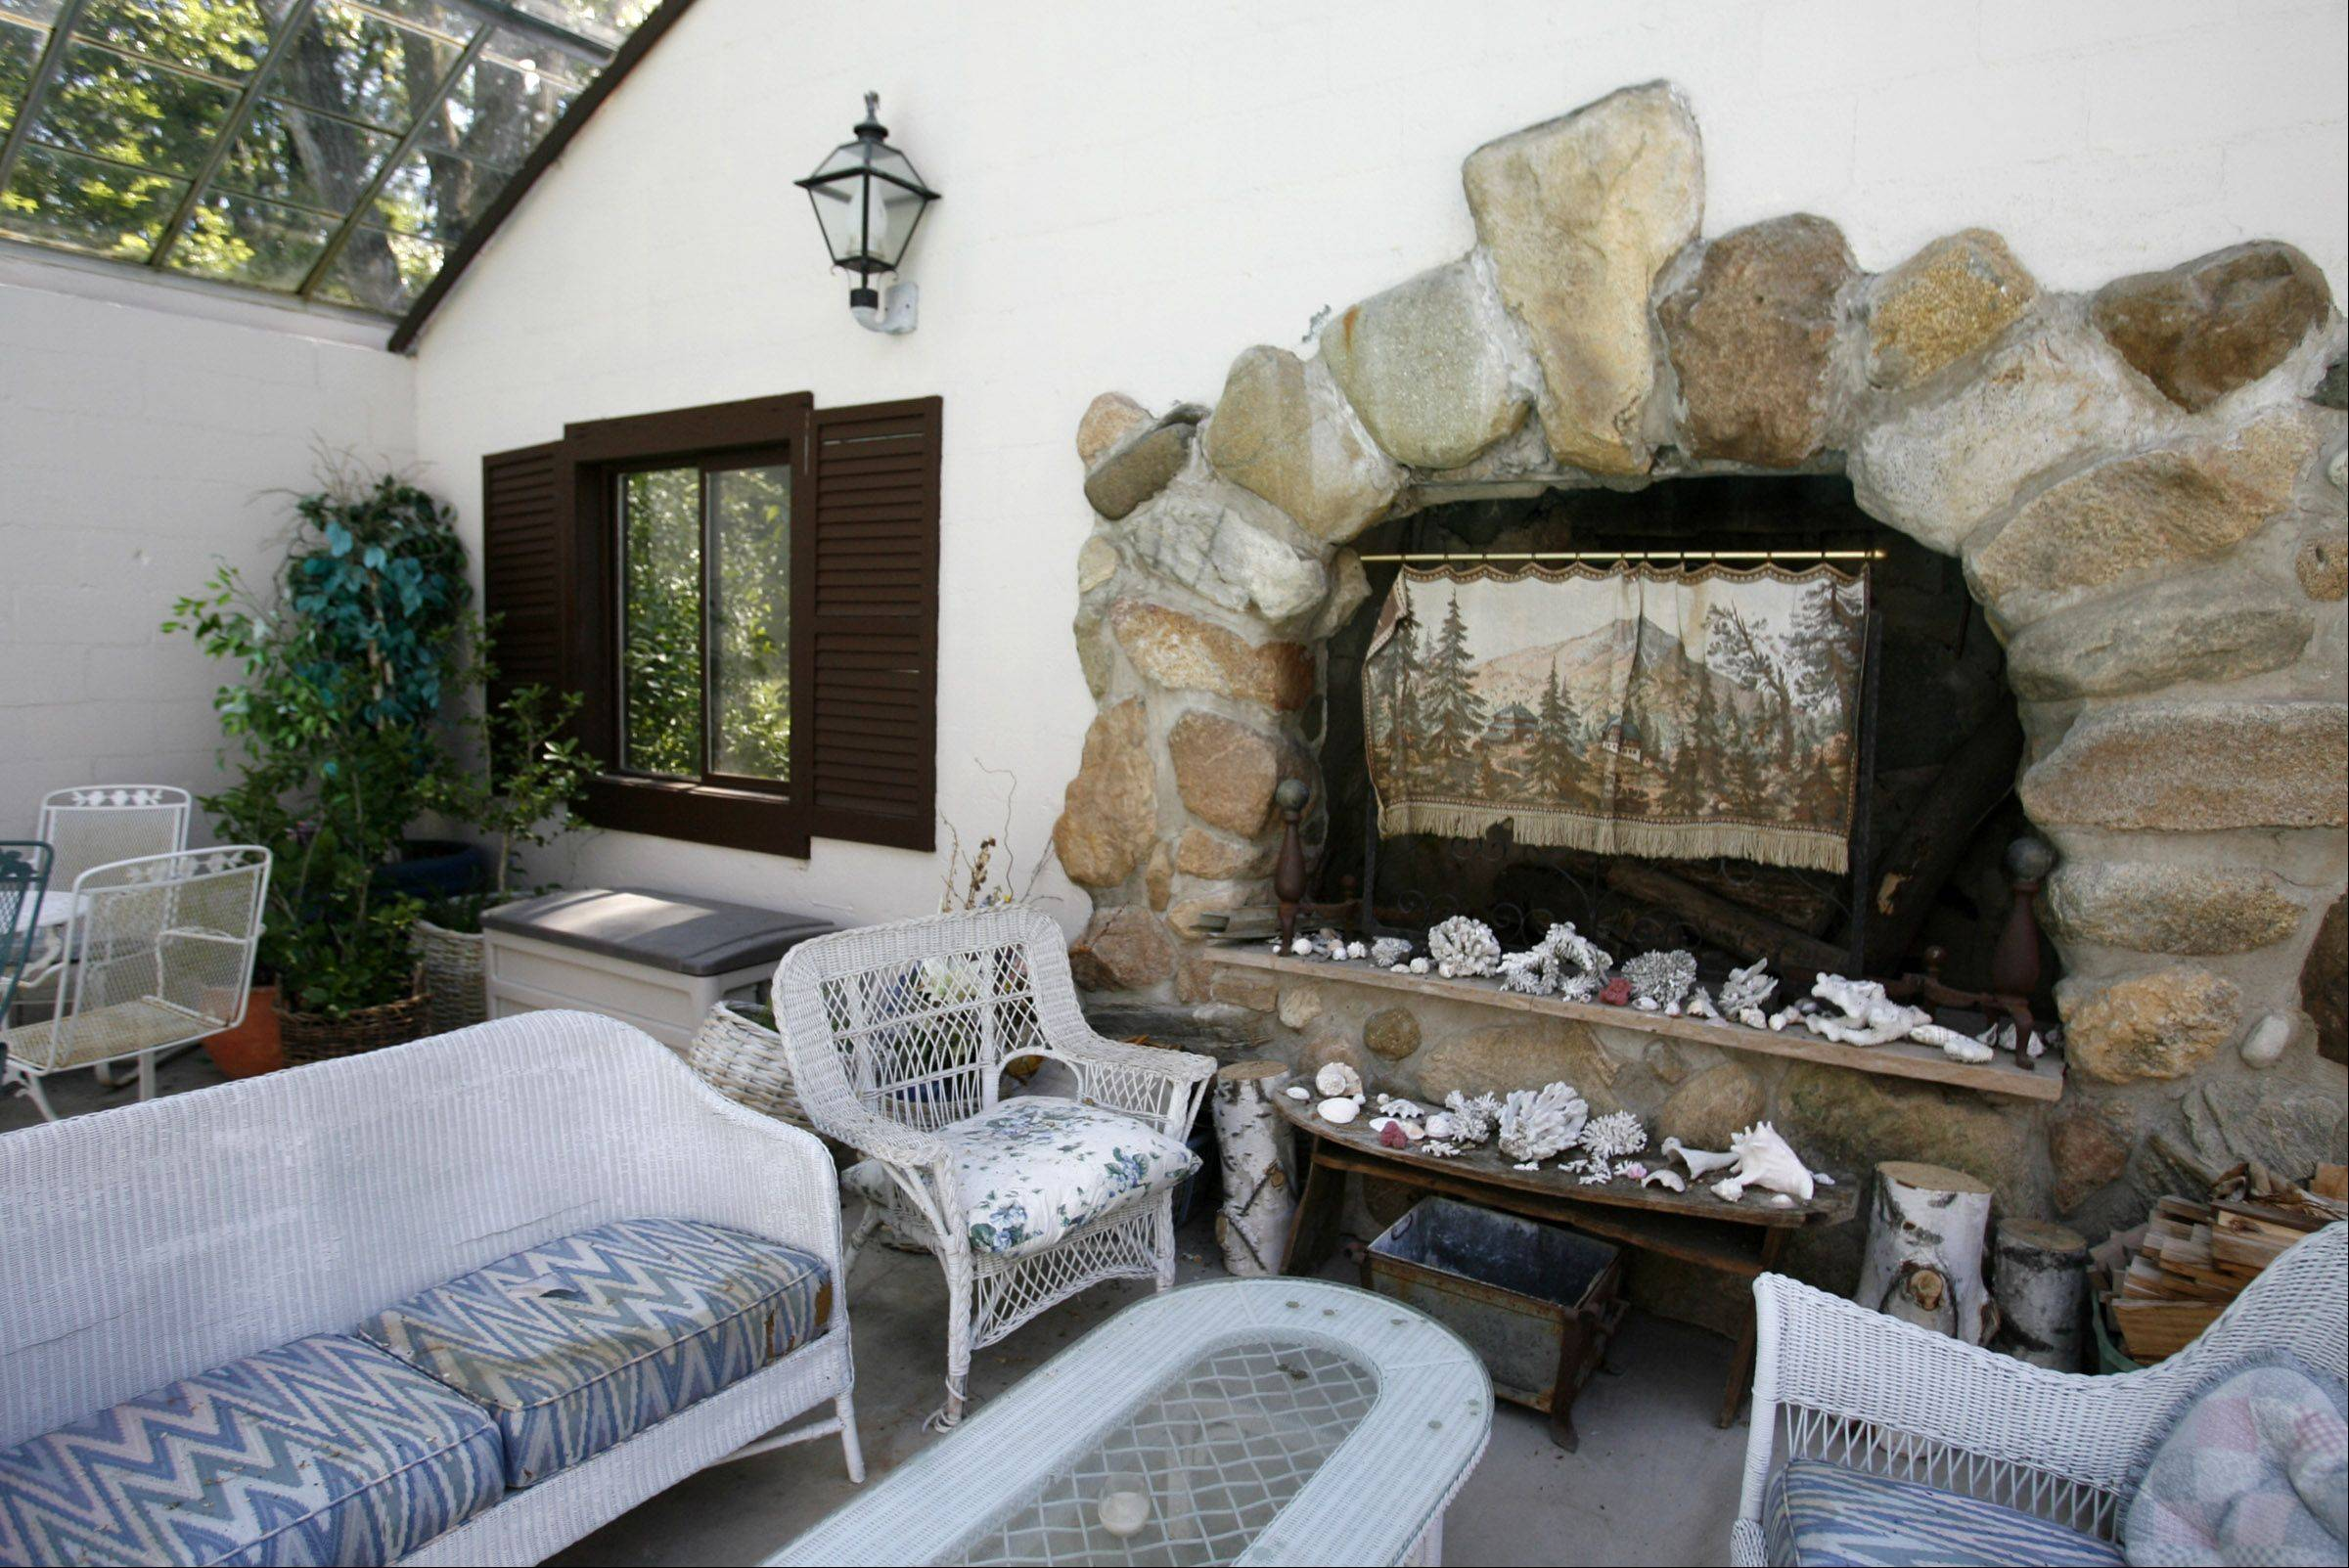 Orville Held built stone fireplaces in his house, including this one in the swimming pool room.